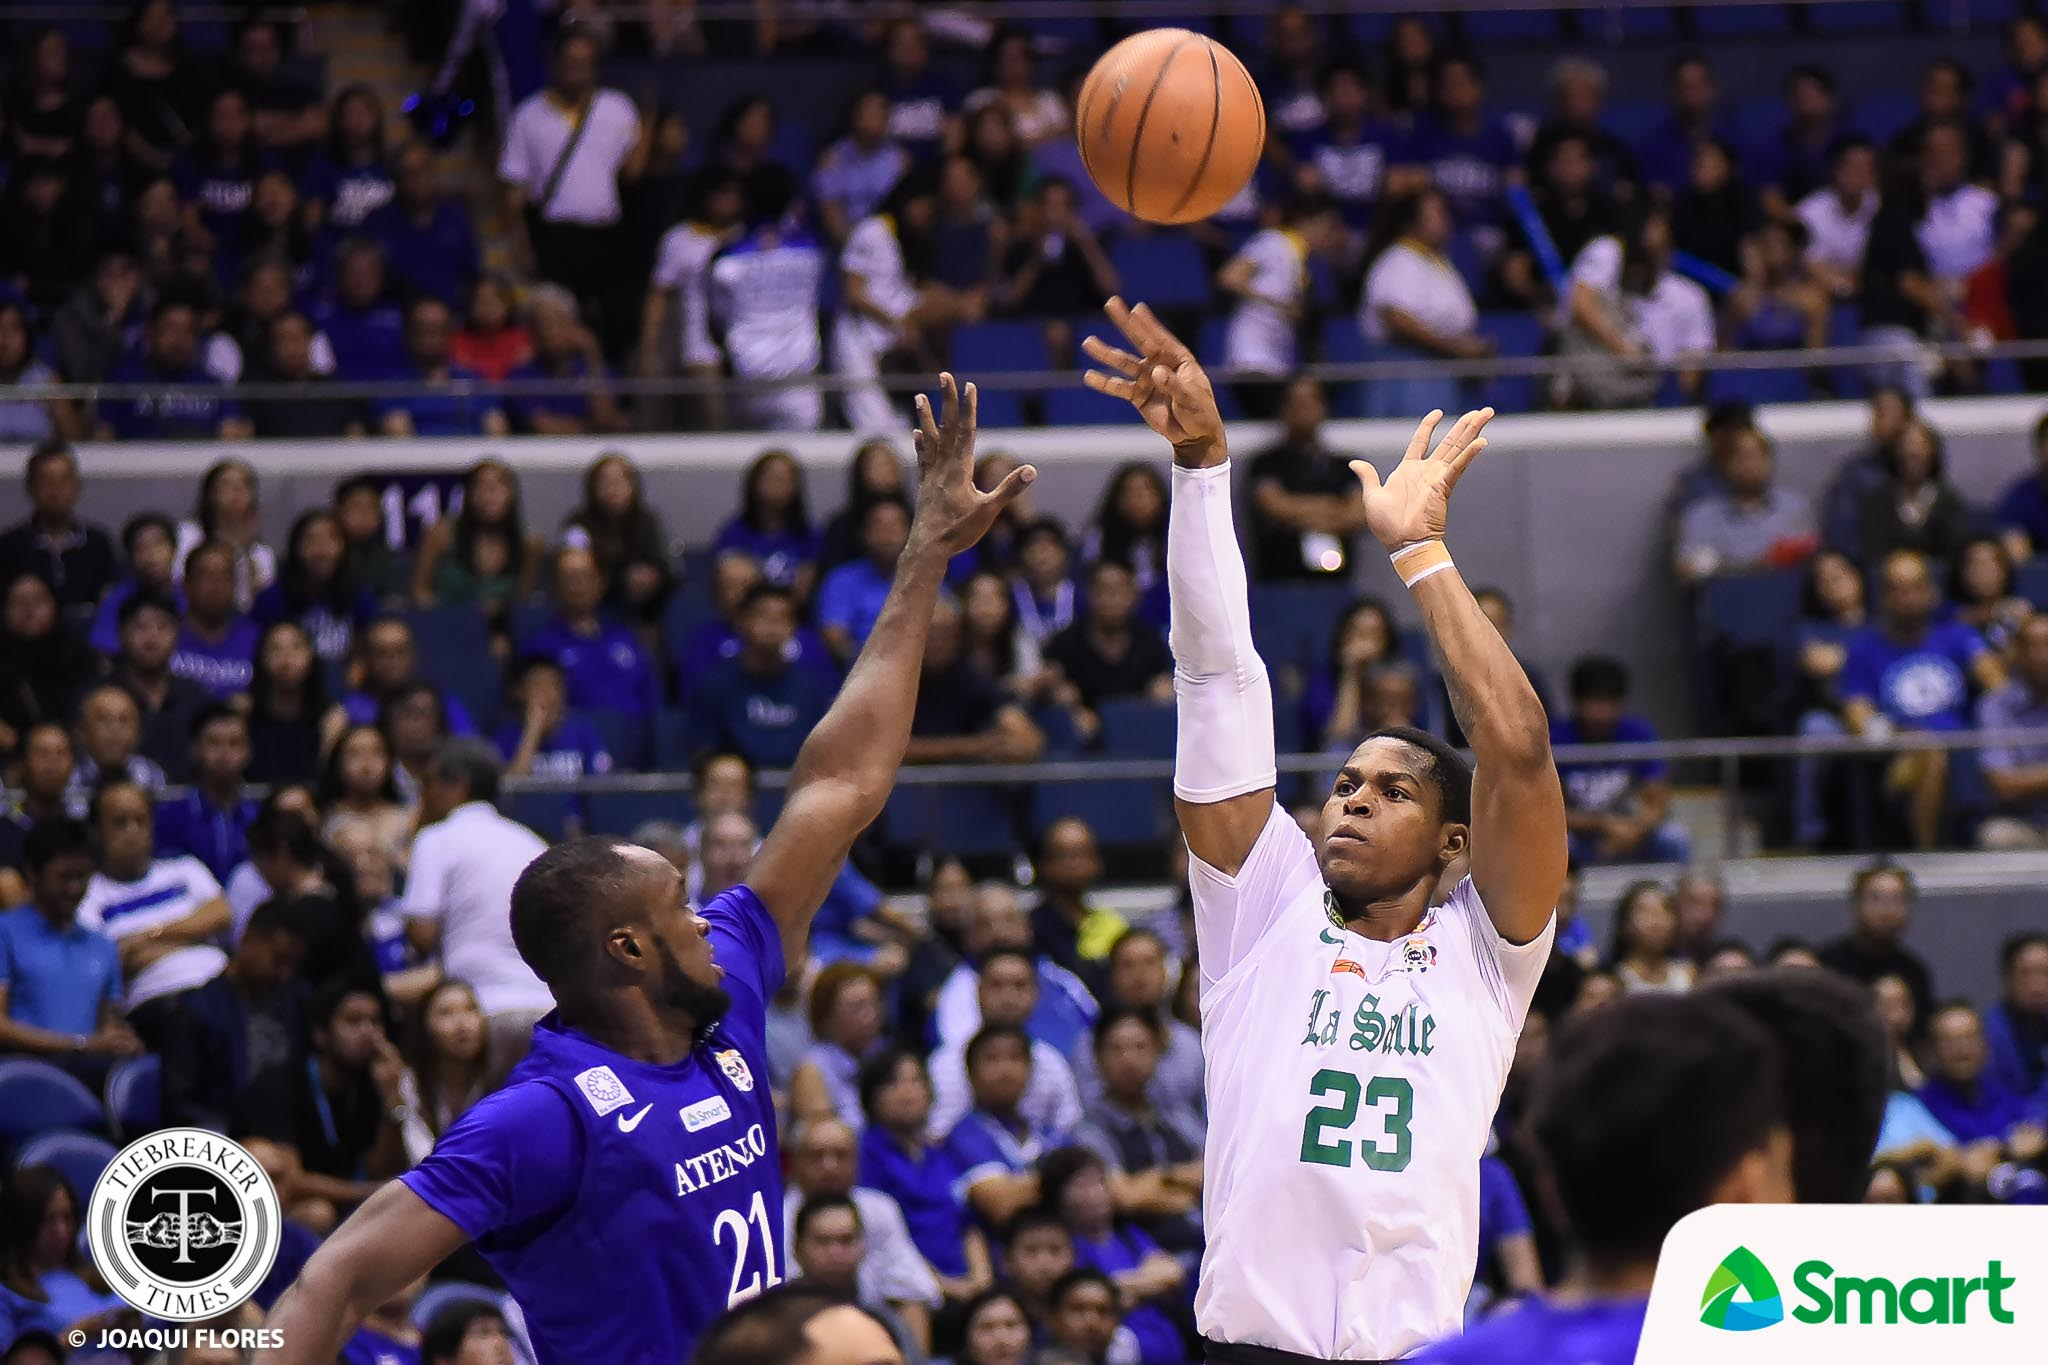 Philippine Sports News - Tiebreaker Times Chooks/SMART Player of the Week Ben Mbala spoils Ateneo's outright Finals bid Basketball DLSU News UAAP  UAAP Season 80 Men's Basketball UAAP Season 80 UAAP Player of the Week Steve Akomo Paul Desiderio DLSU Men's Basketball Chooks-to-Go Ben Mbala Arvin Tolentino